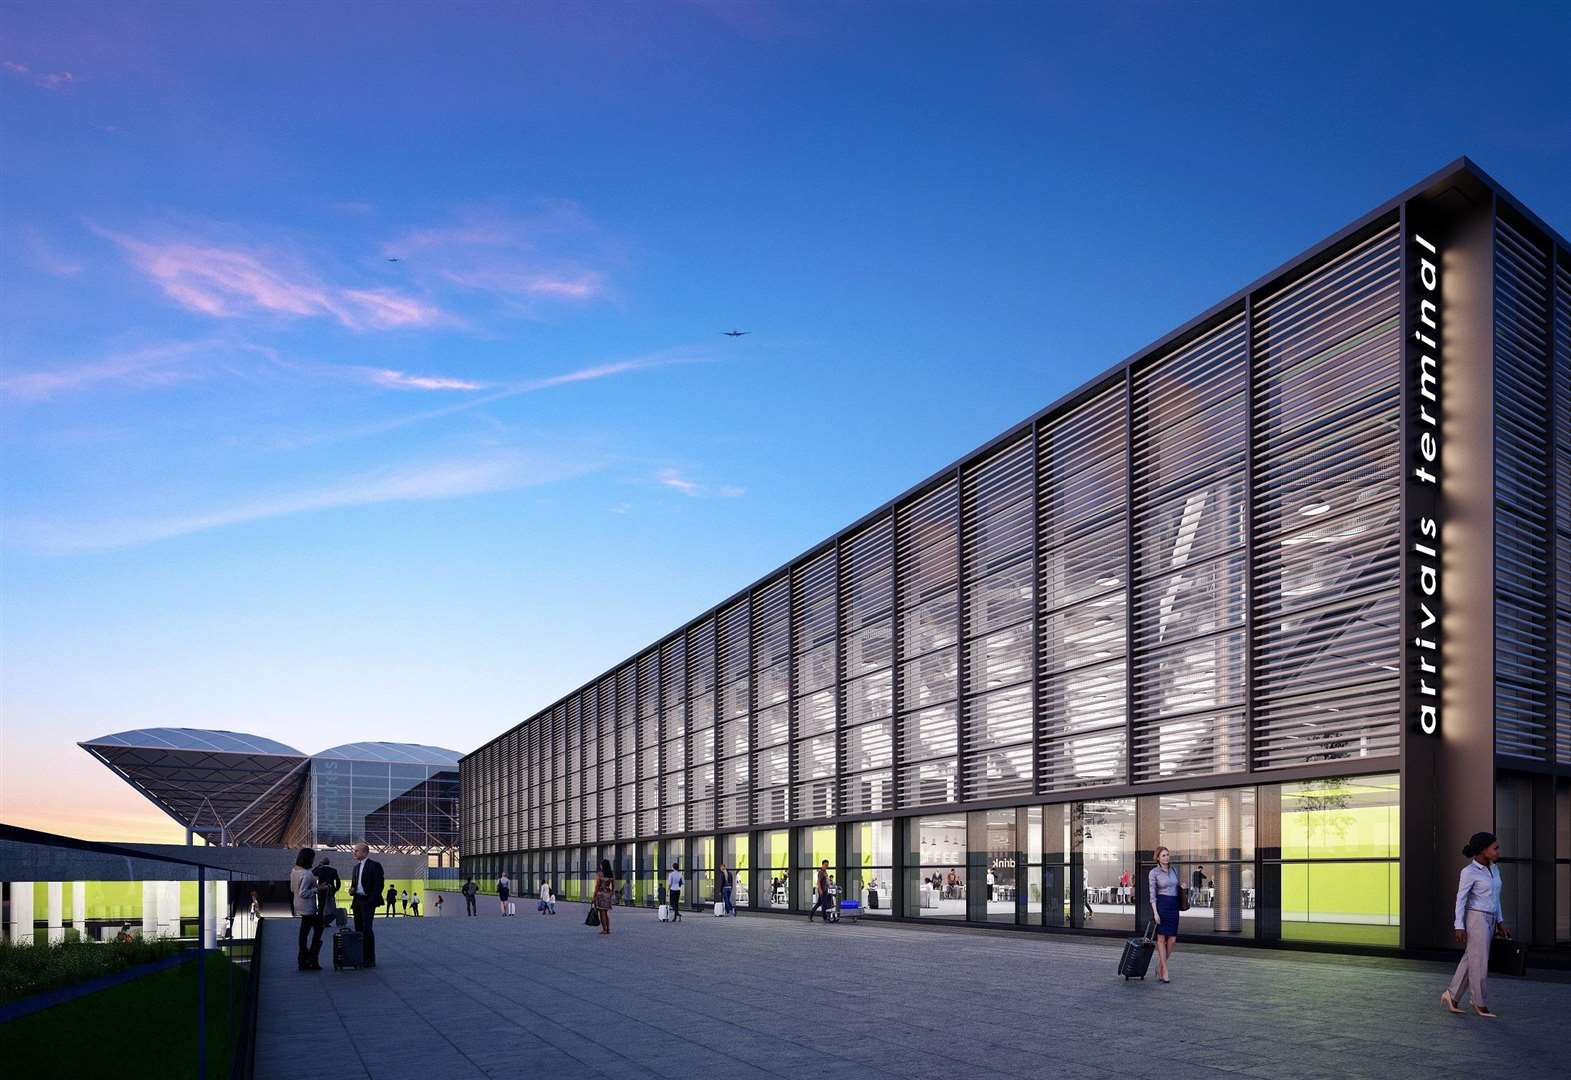 Take a virtual walk through Stansted Airport's new £150million arrivals terminal